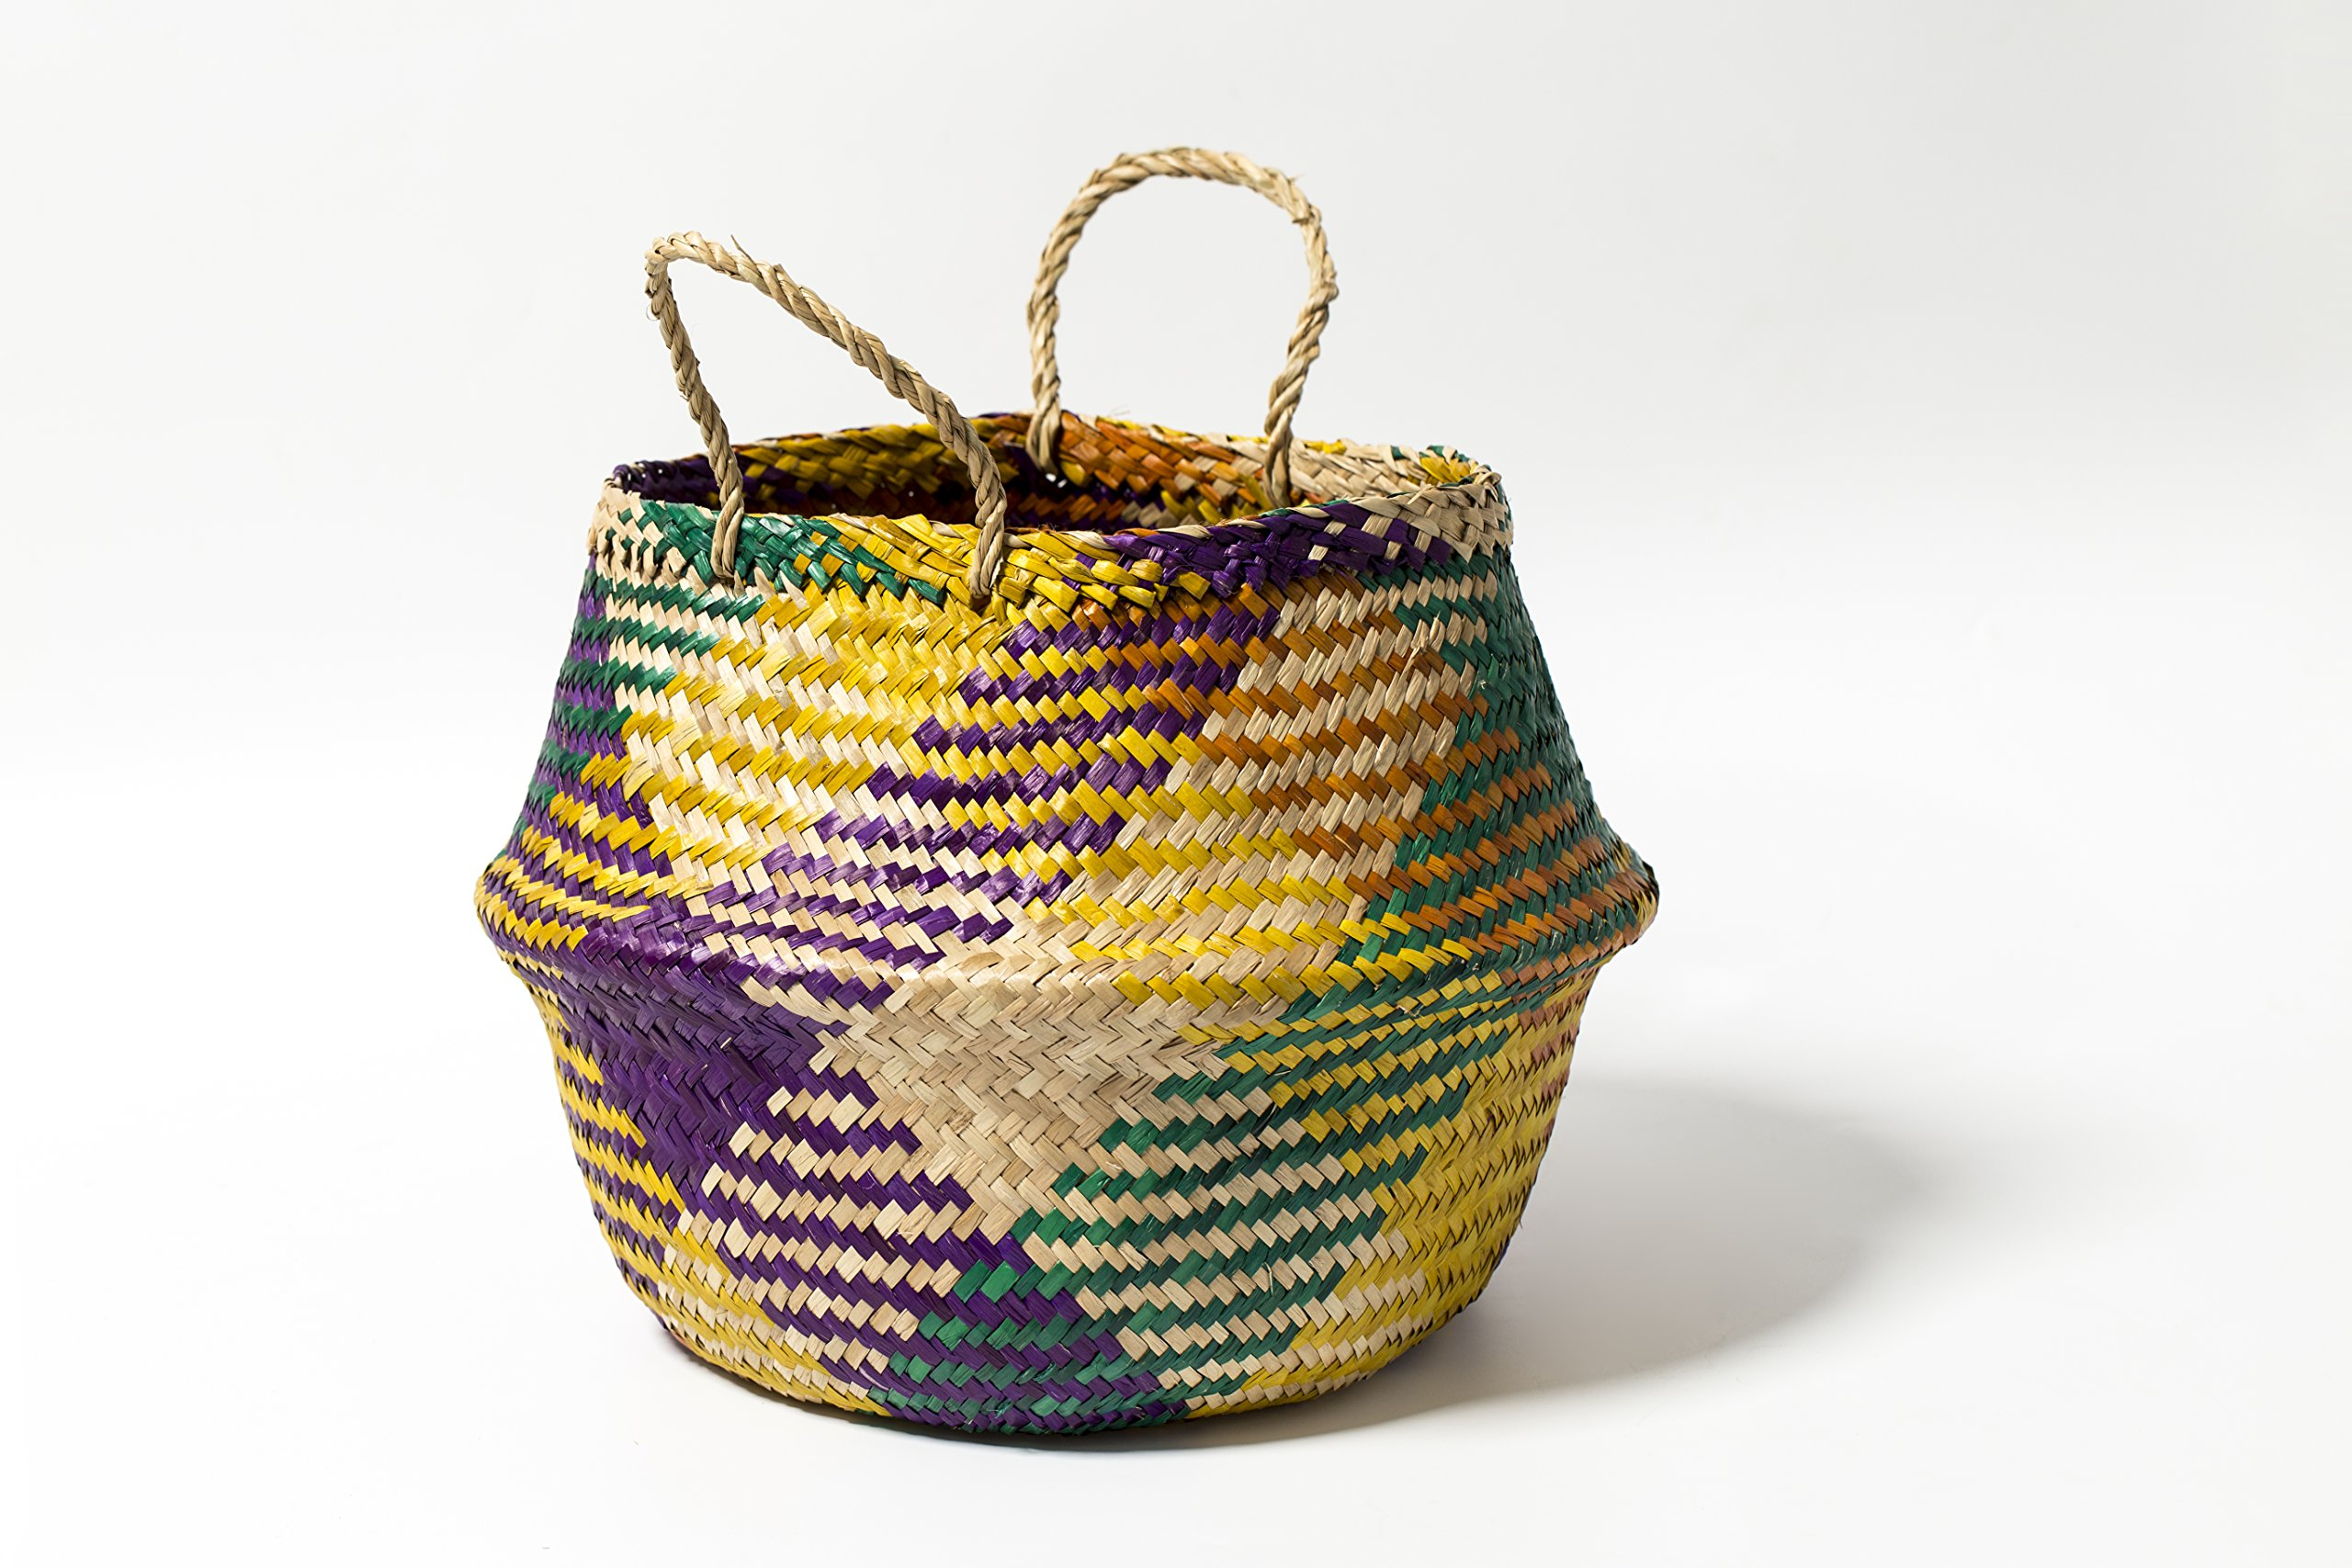 Multi Color All Natural Hand Woven Dried Seagrass Belly Tote Basket, Seagrass Beach Handbag by Thai Long